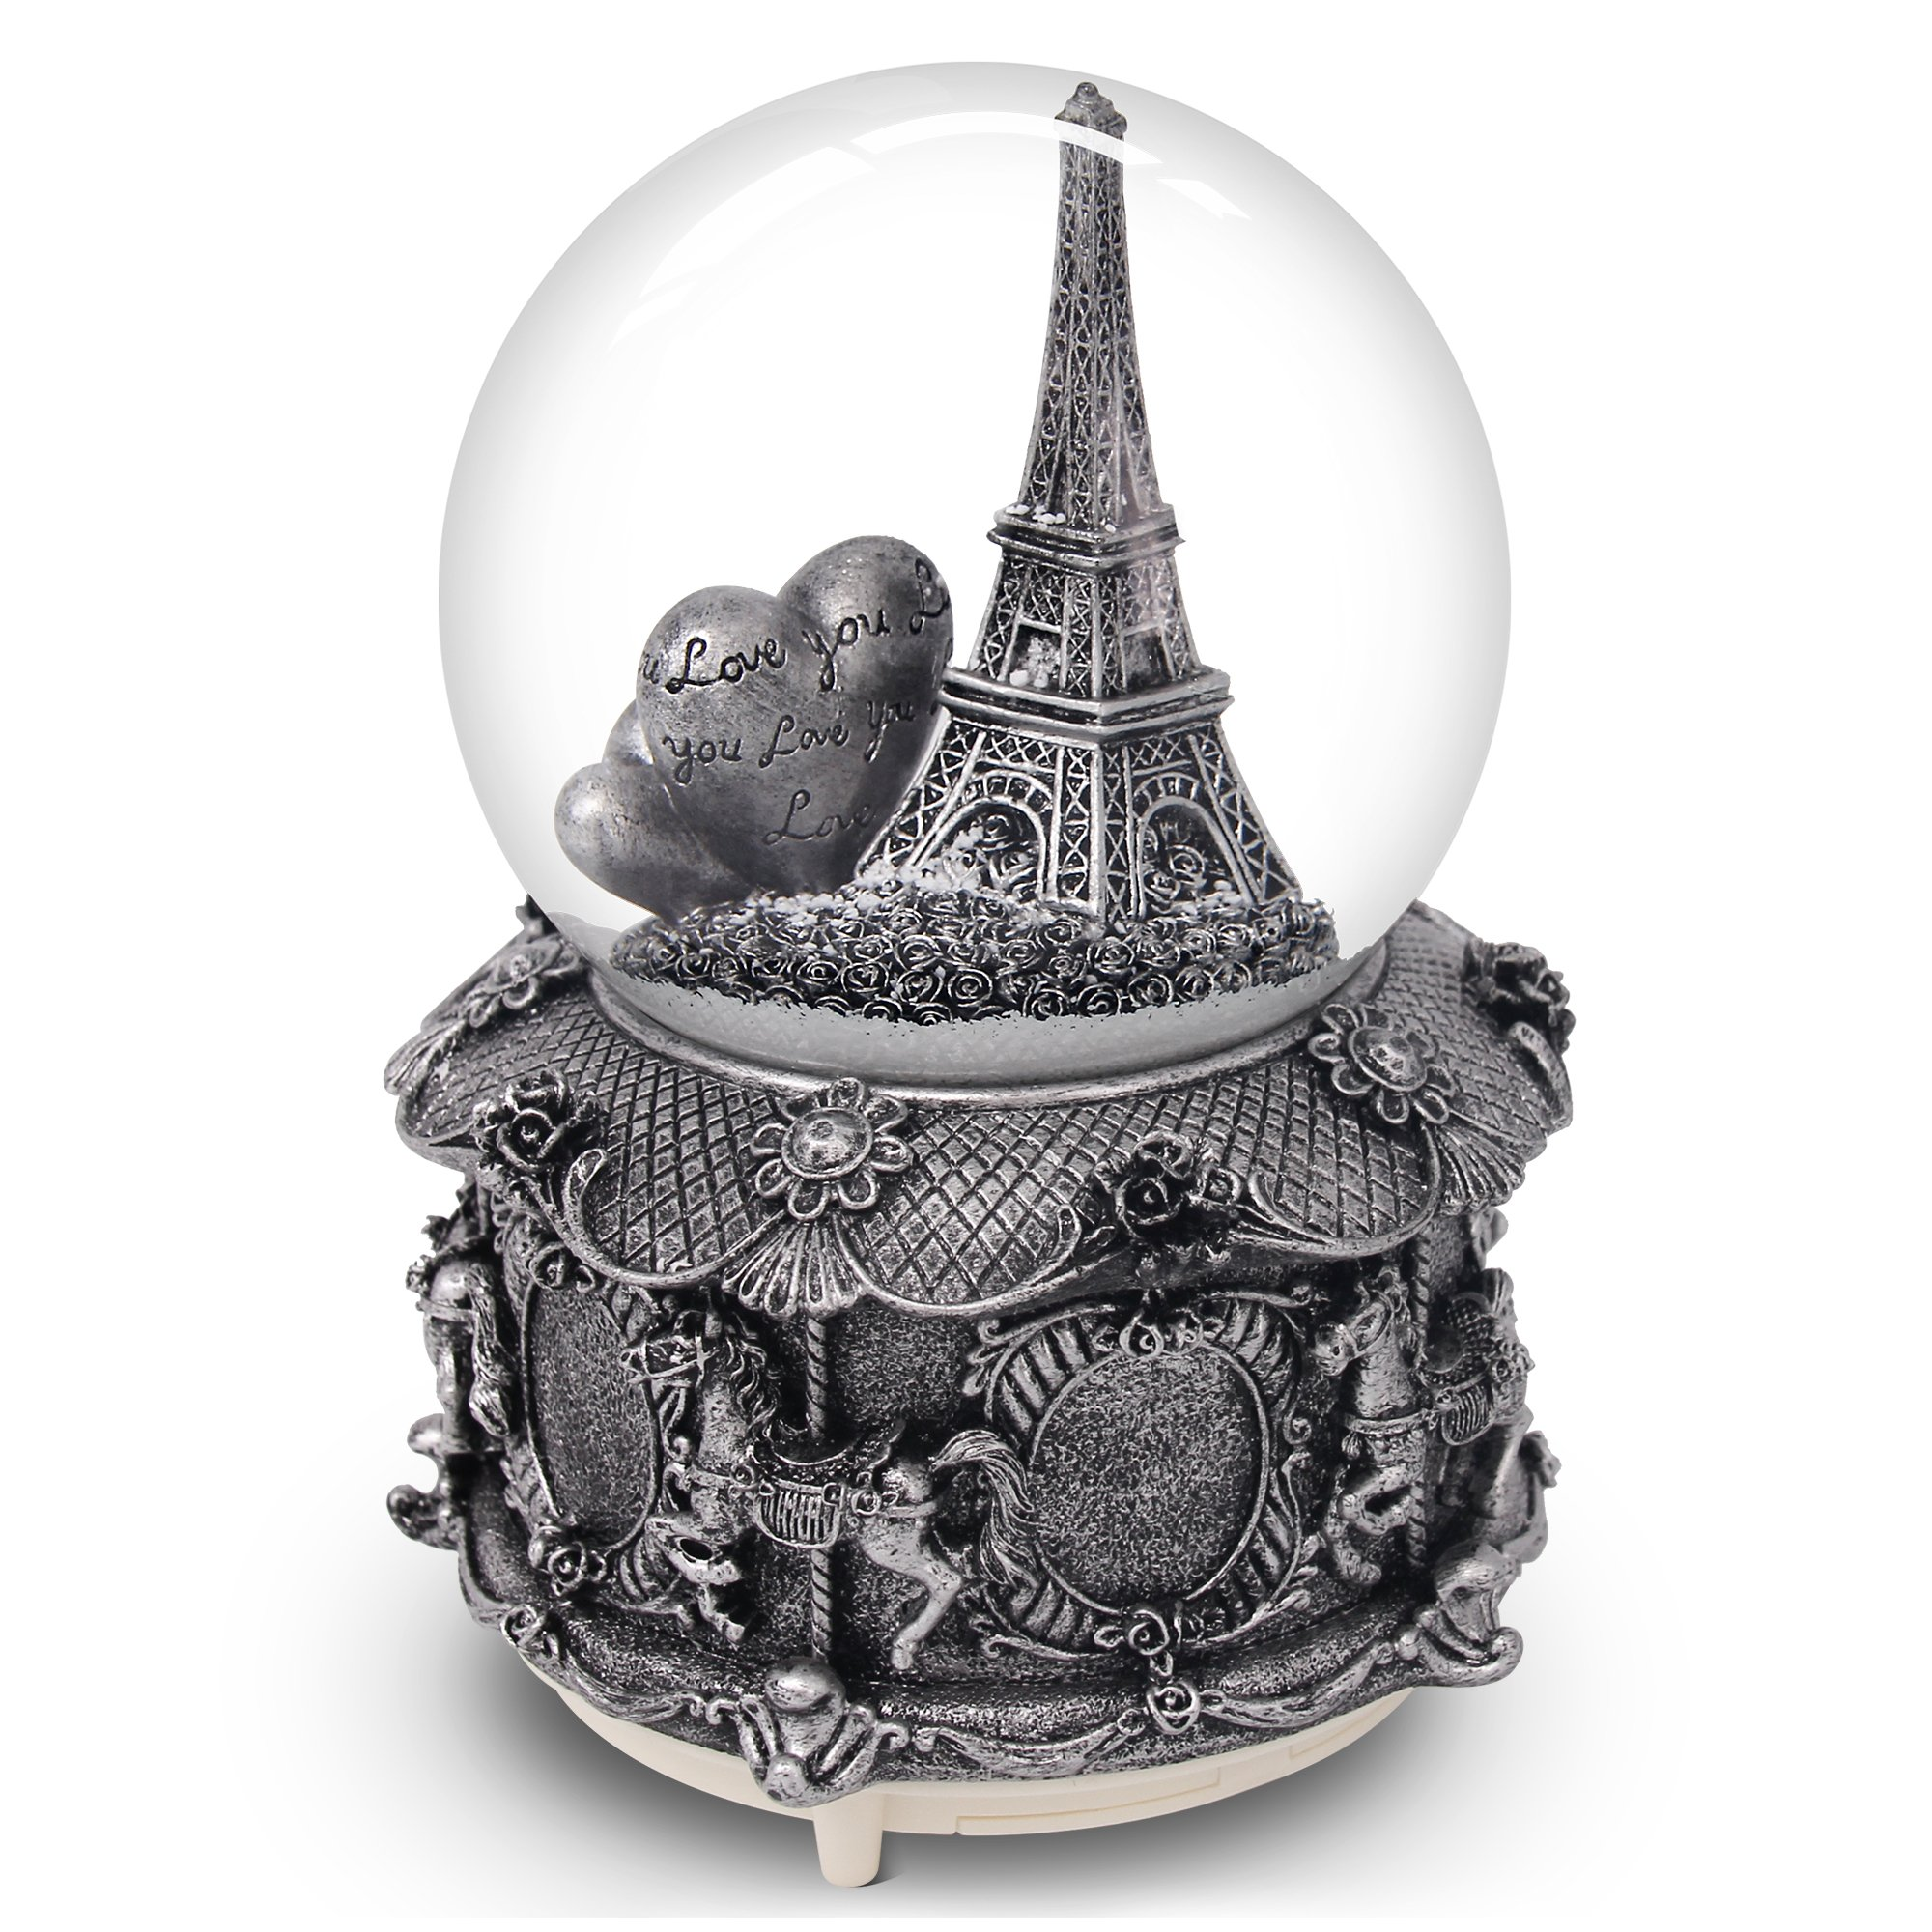 Zizo Paris France Eiffel Tower Snow Globe in Silver Tone and Gold Tone Exclusive 65mm